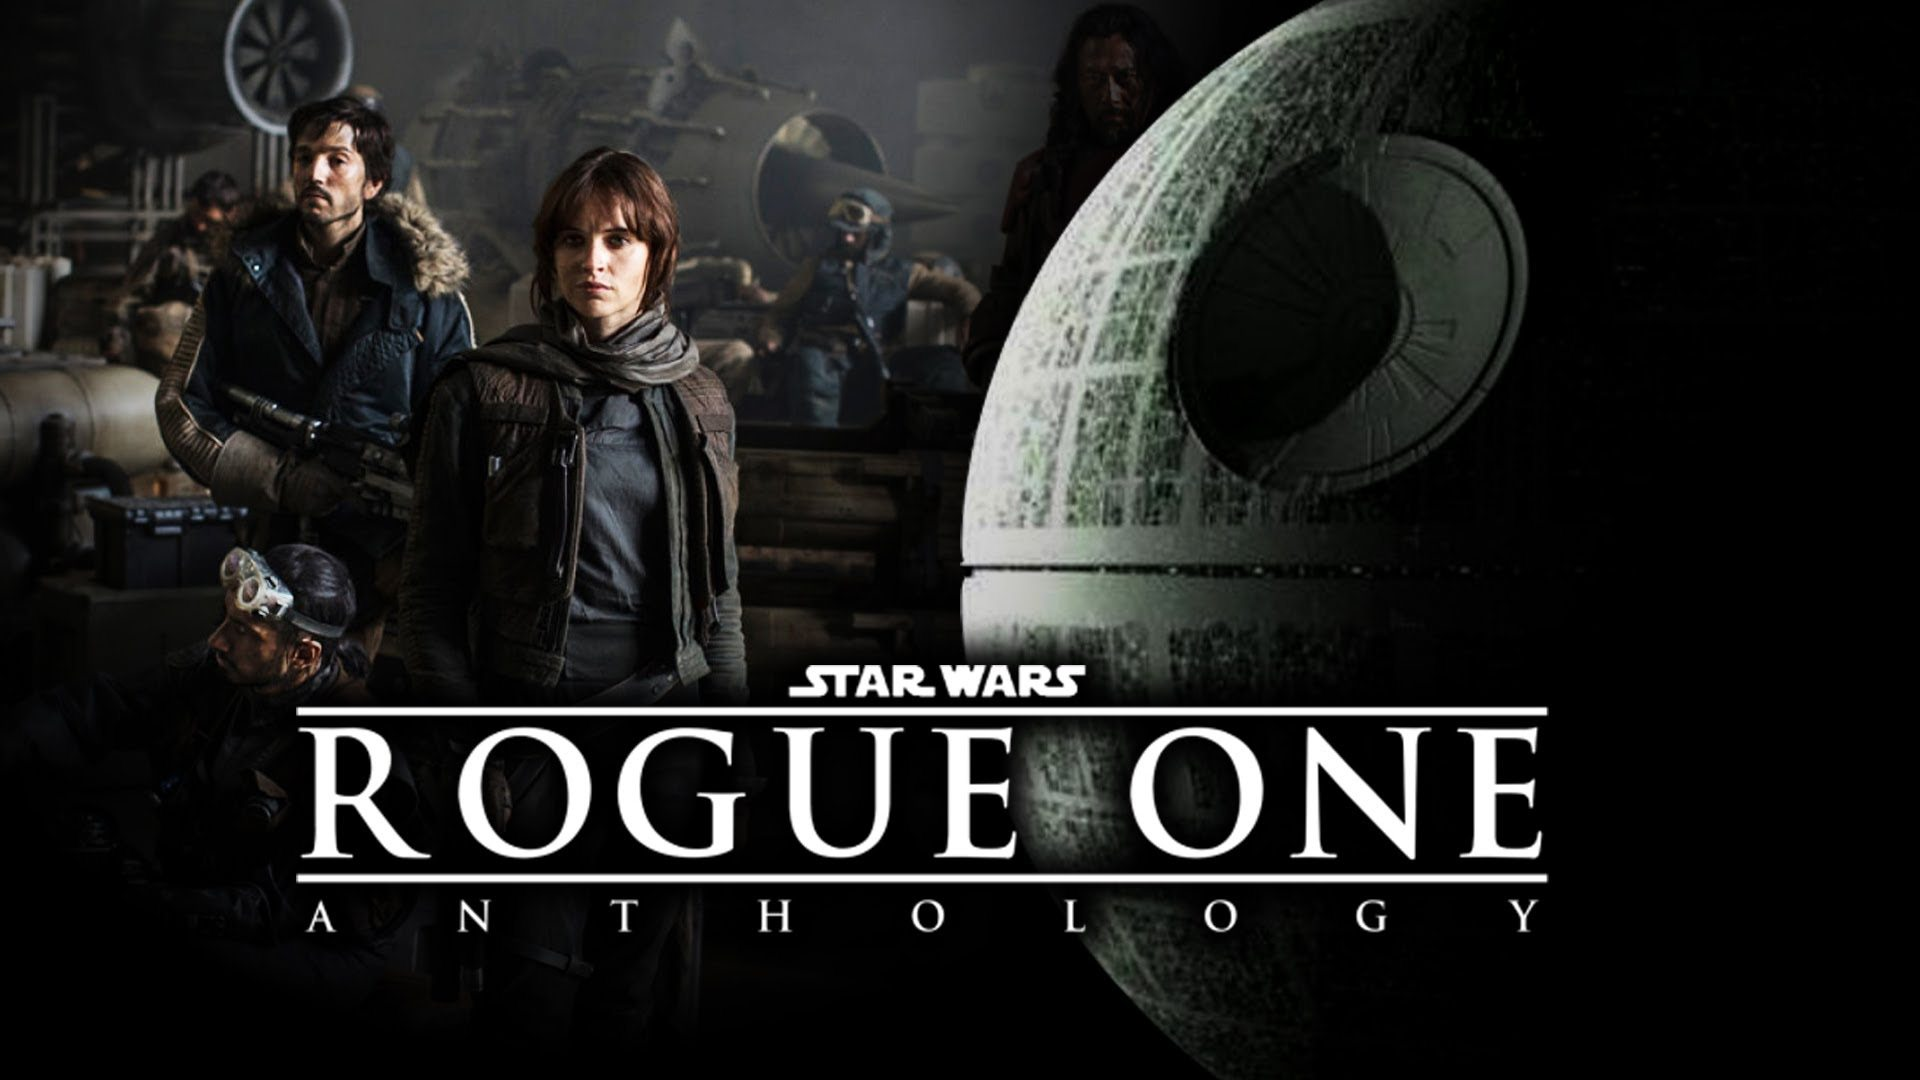 Free Download Star Wars Rogue One Wallpaper With Jyn Erso 1920